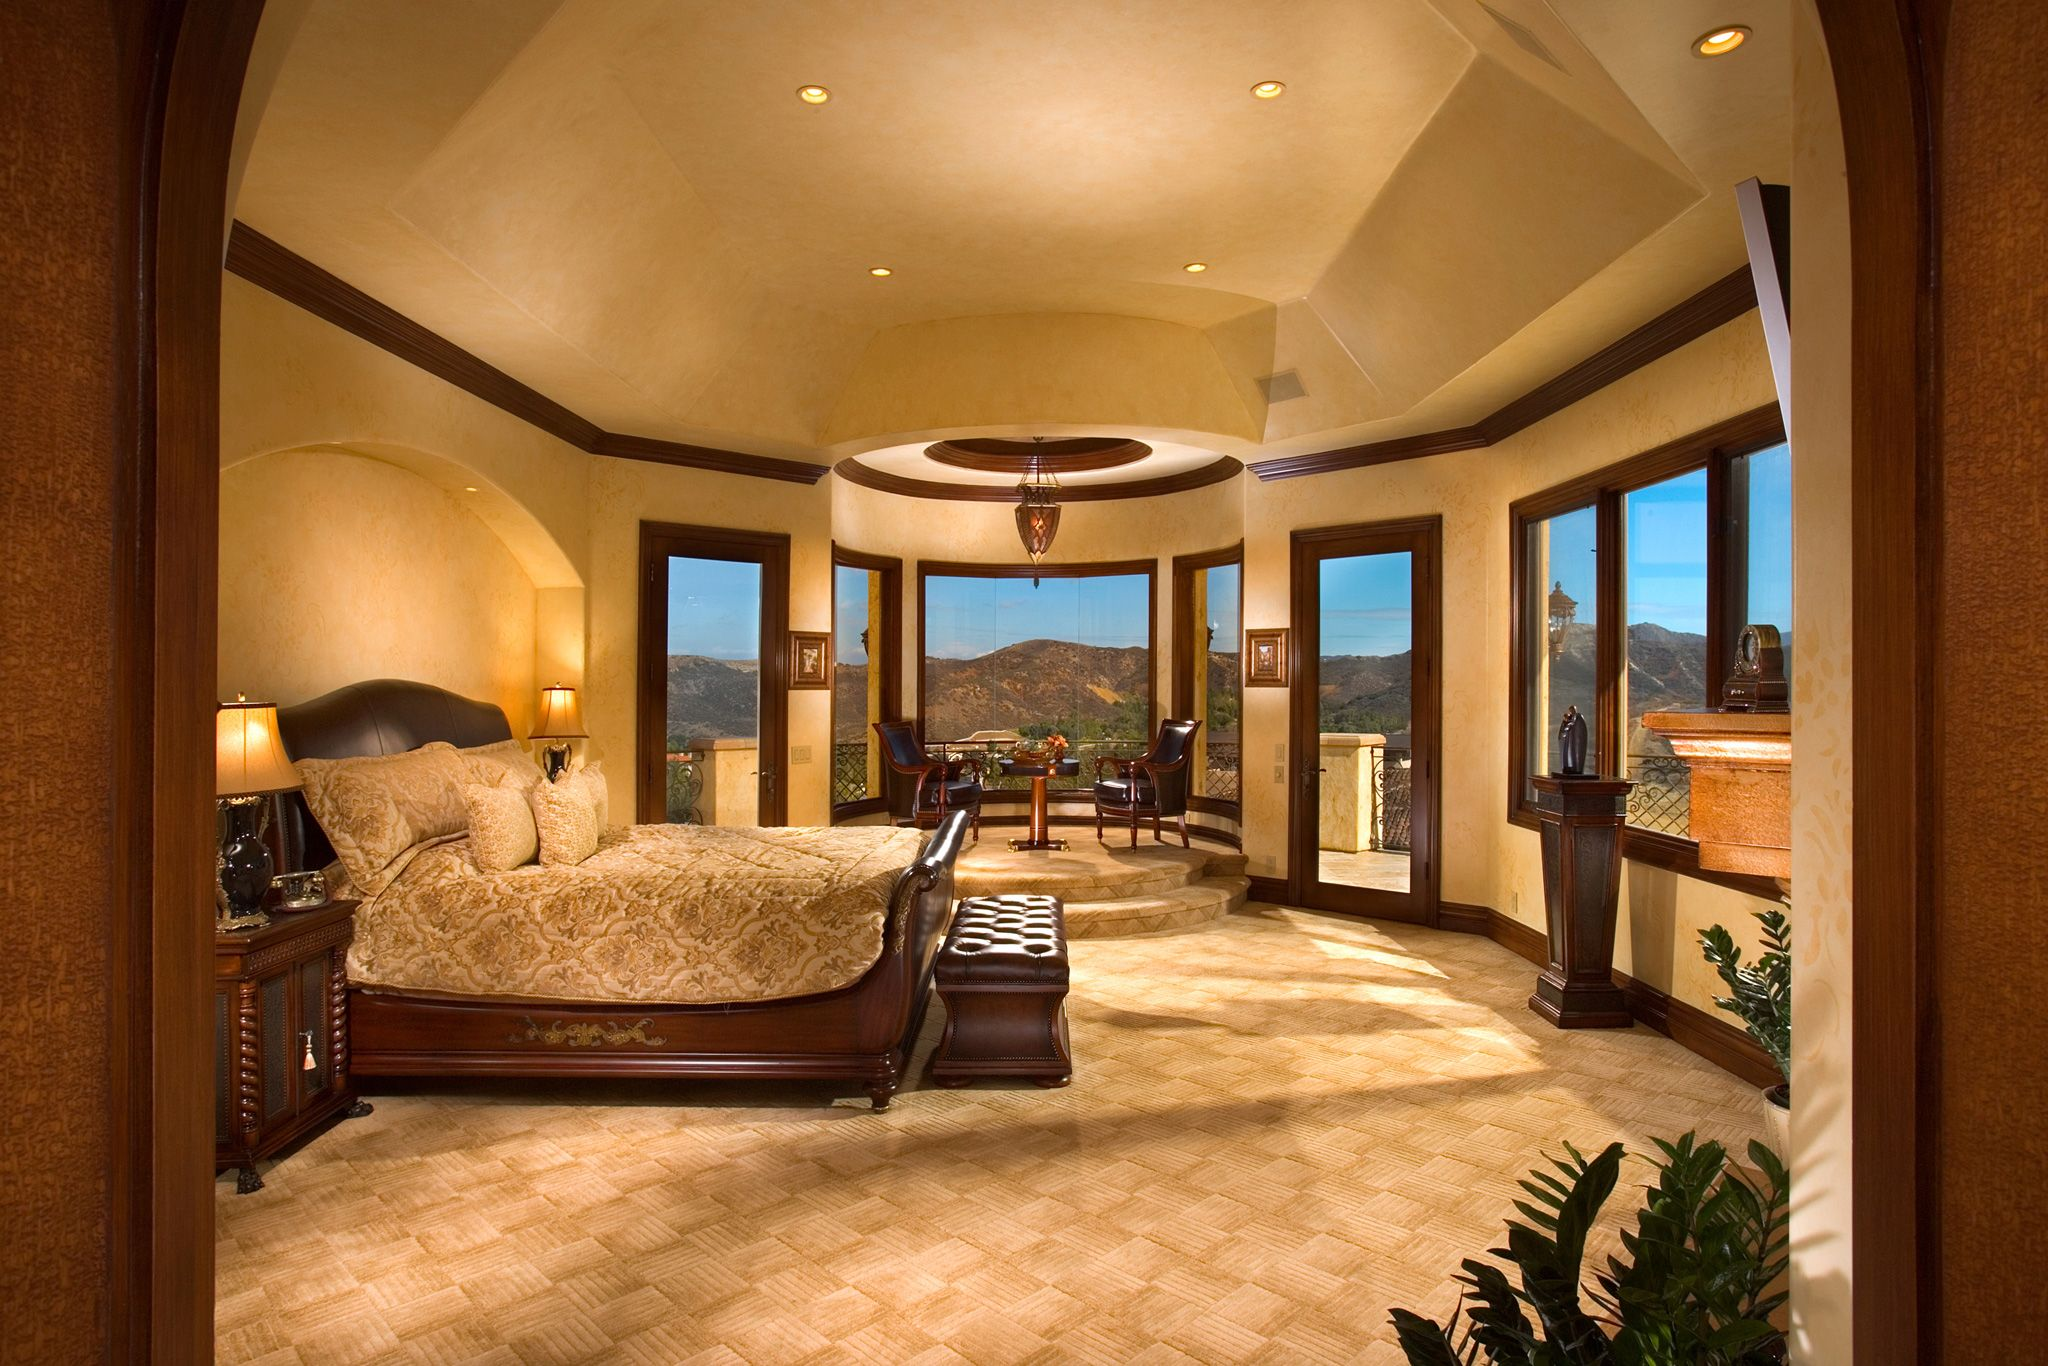 21 incredible master bedrooms design ideas luxury master - Big master bedroom design ...